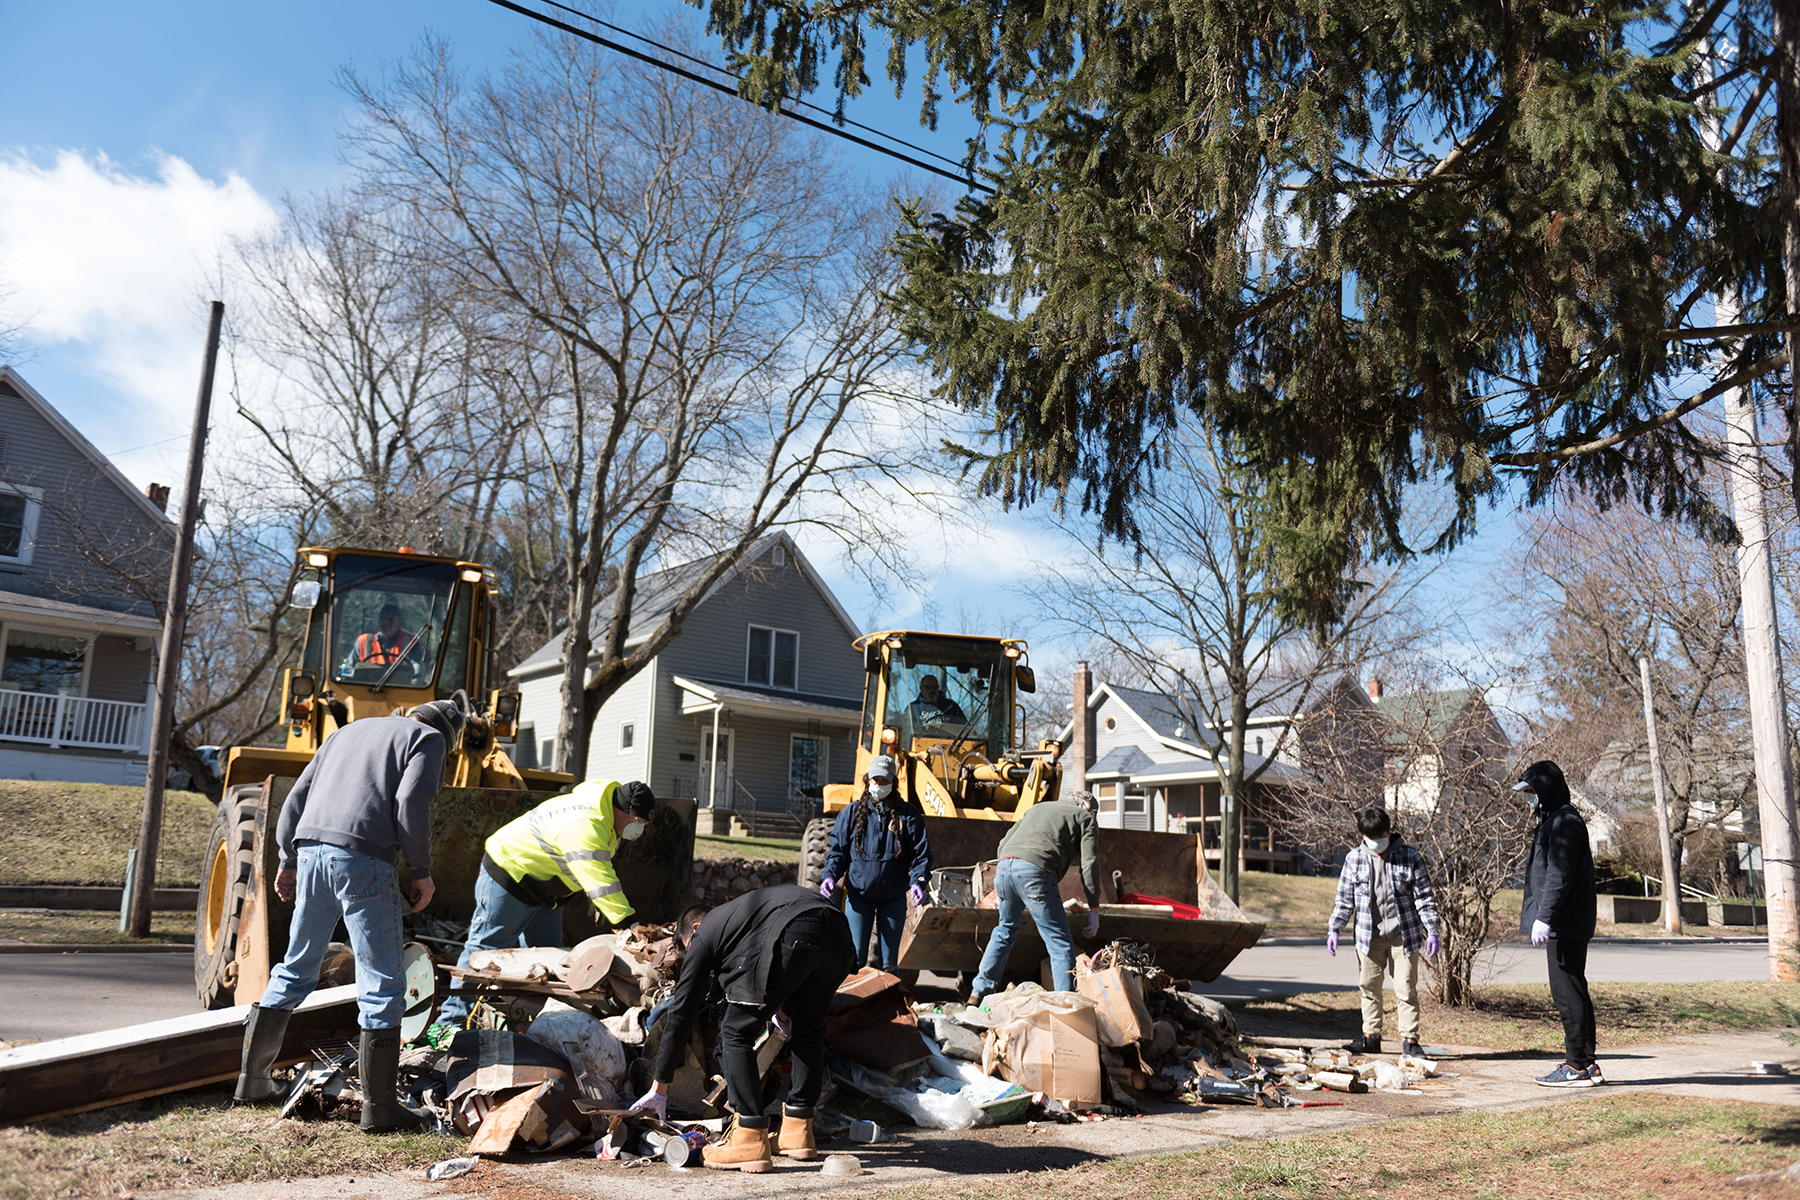 Andrews students, faculty and staff assist with flood clean-up efforts in Niles, Michigan.